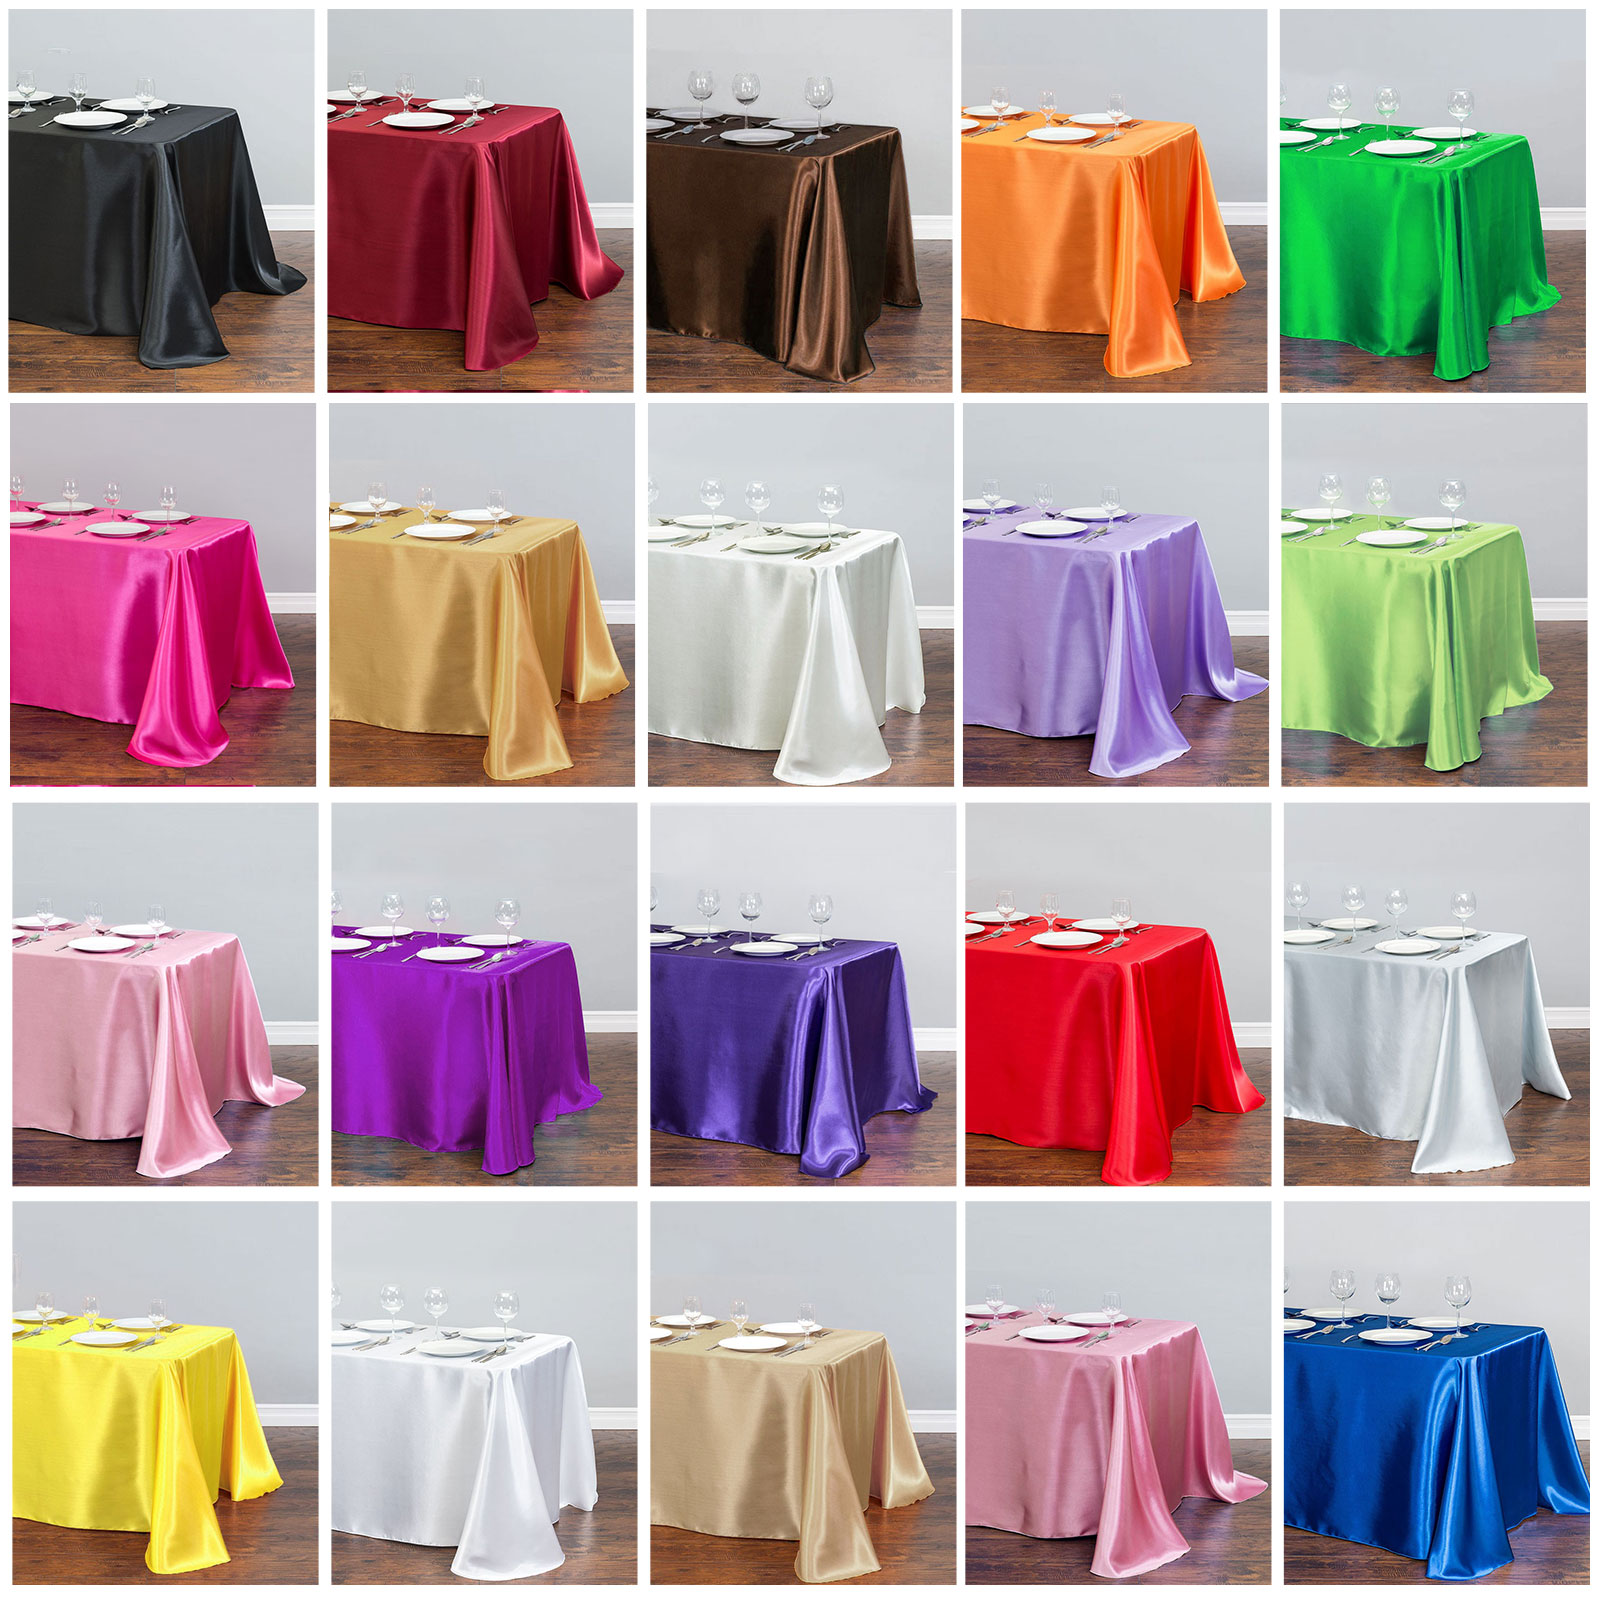 1pcs Solid Color Satin Table Cloth Tablecloth Table Cover Overlay For Birthday Wedding Banquet Restaurant Festival Party Supply